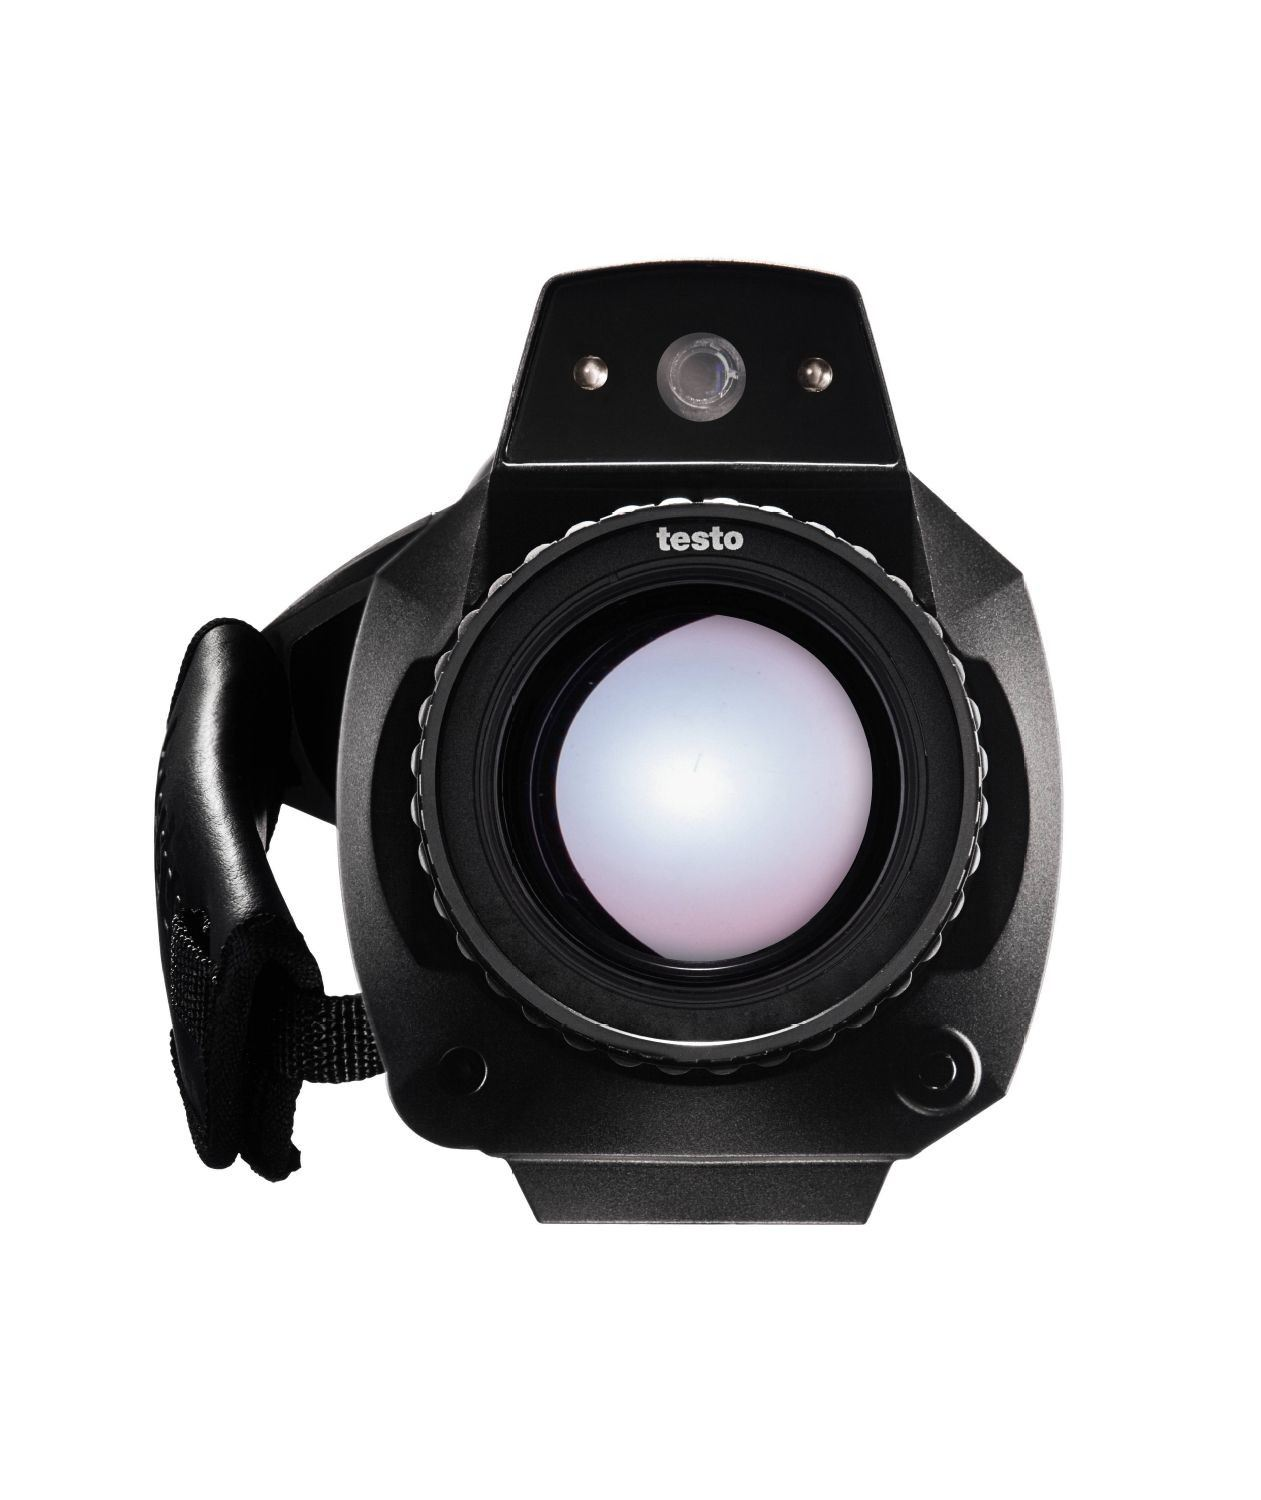 Testo 885 Set - Thermal Imager with Super-telephoto Lens Plus Two Lenses